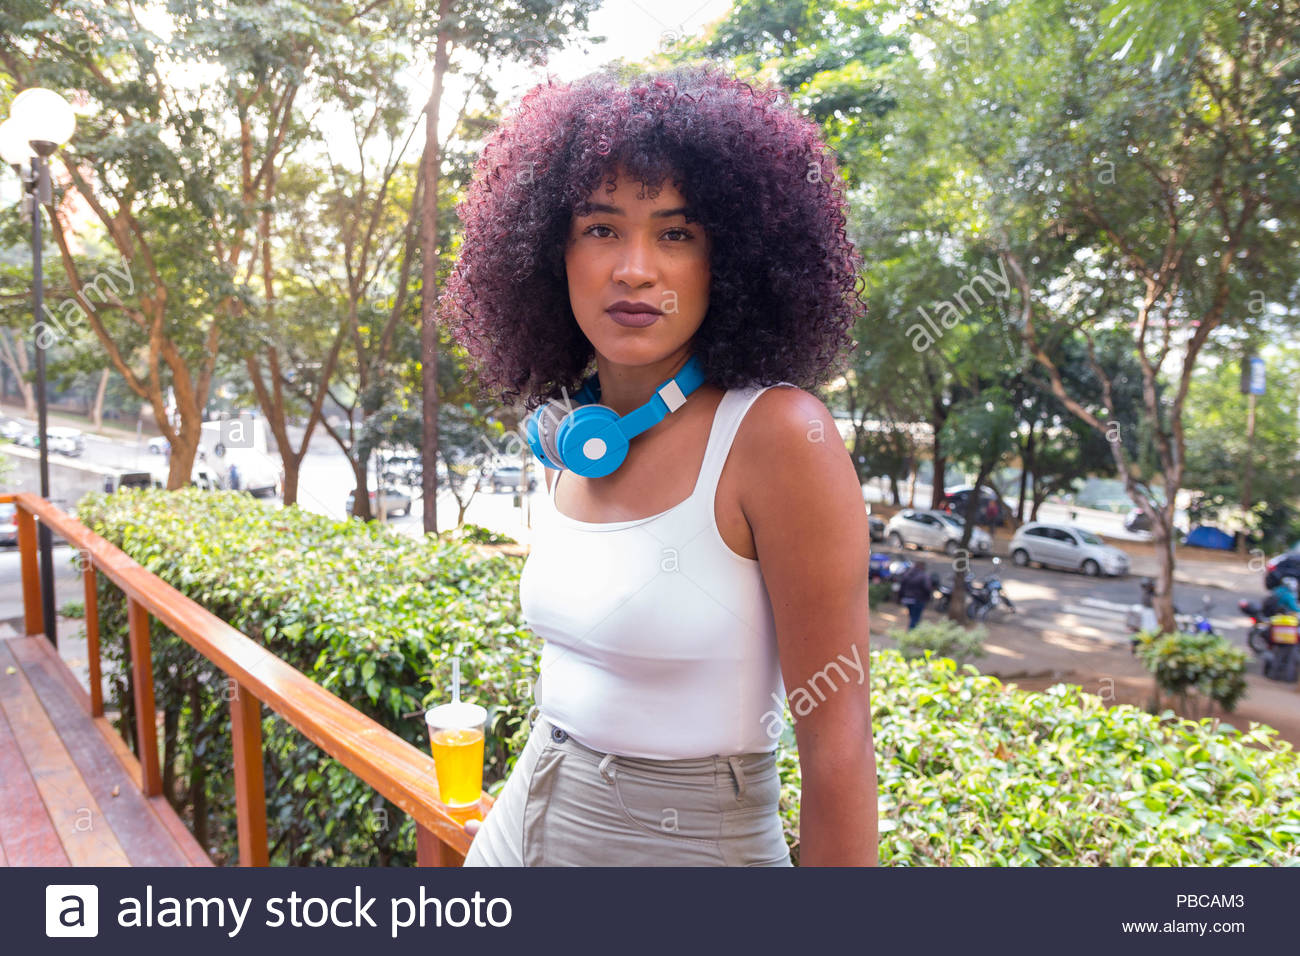 Portrait of gorgeous young woman, confident and looking at camera. Urban background, trees, street and cars. She is black, on her early twenties, Afro - Stock Image